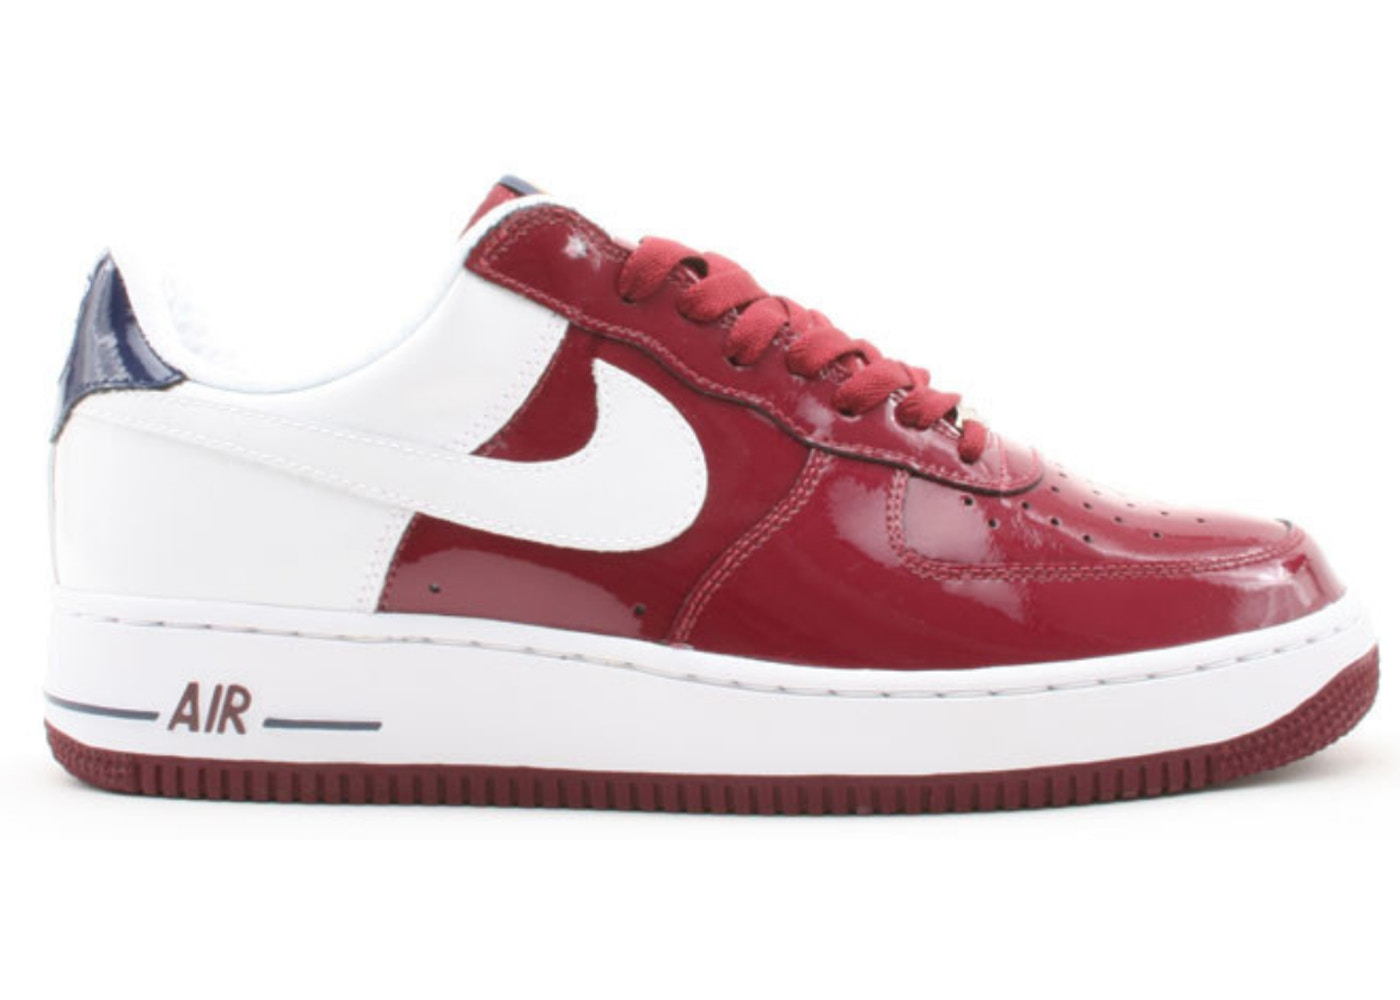 fbd0fa9650 Air Force 1 Low LeBron